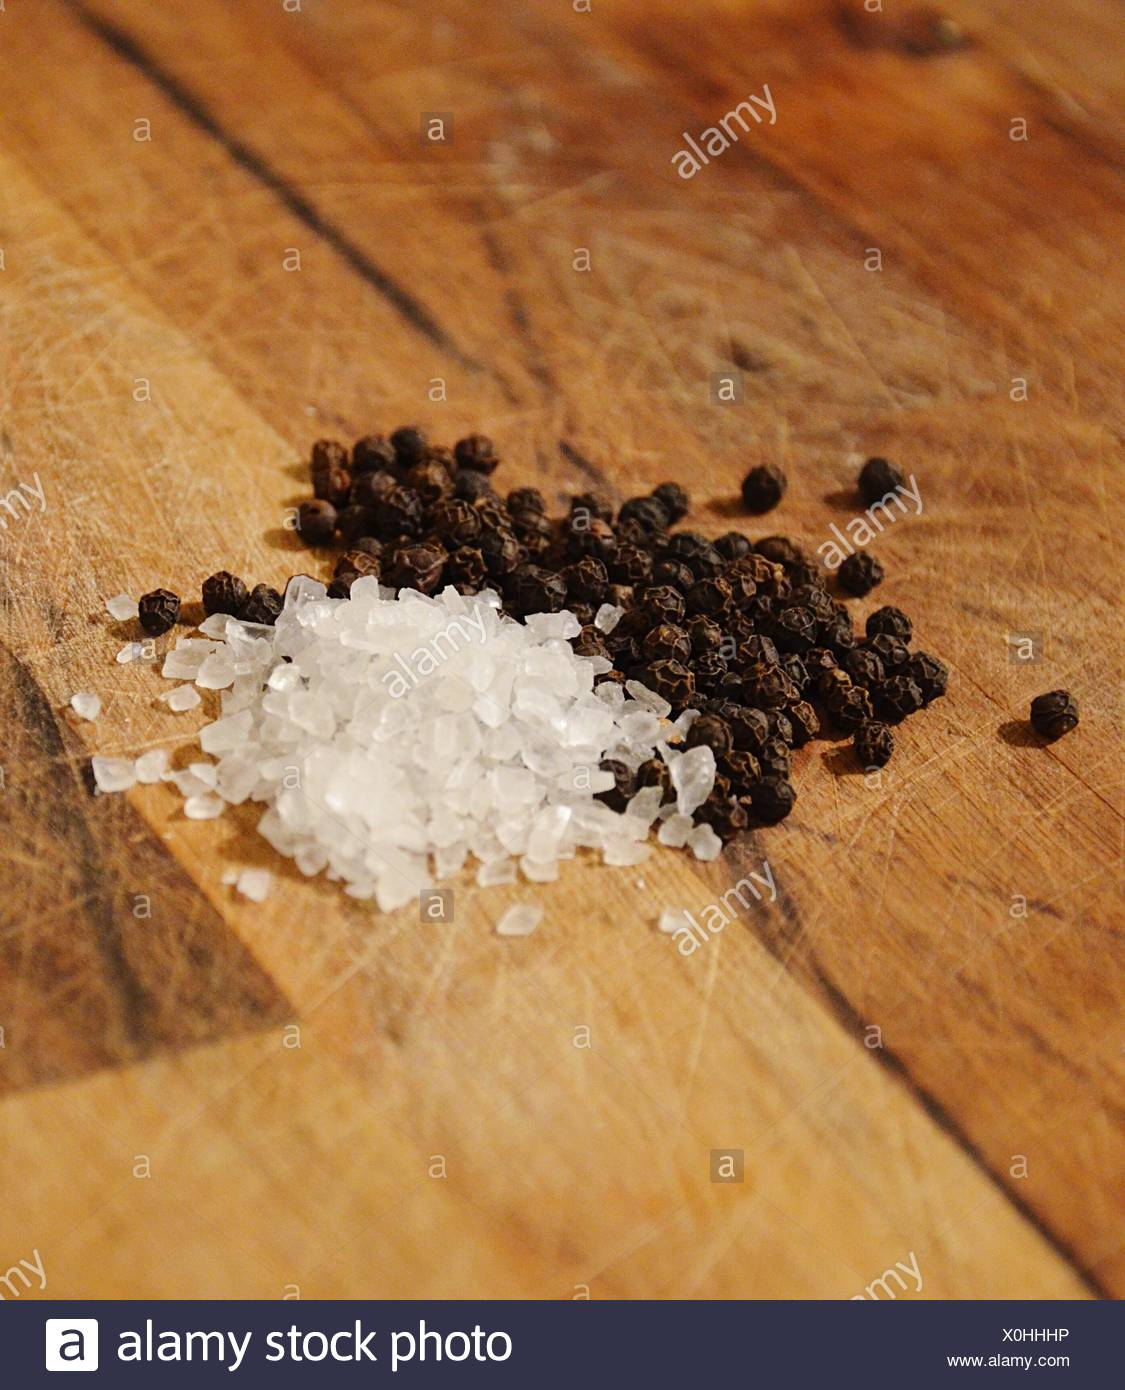 High Angle View Of Black Peppers And Sugars On Table - Stock Image